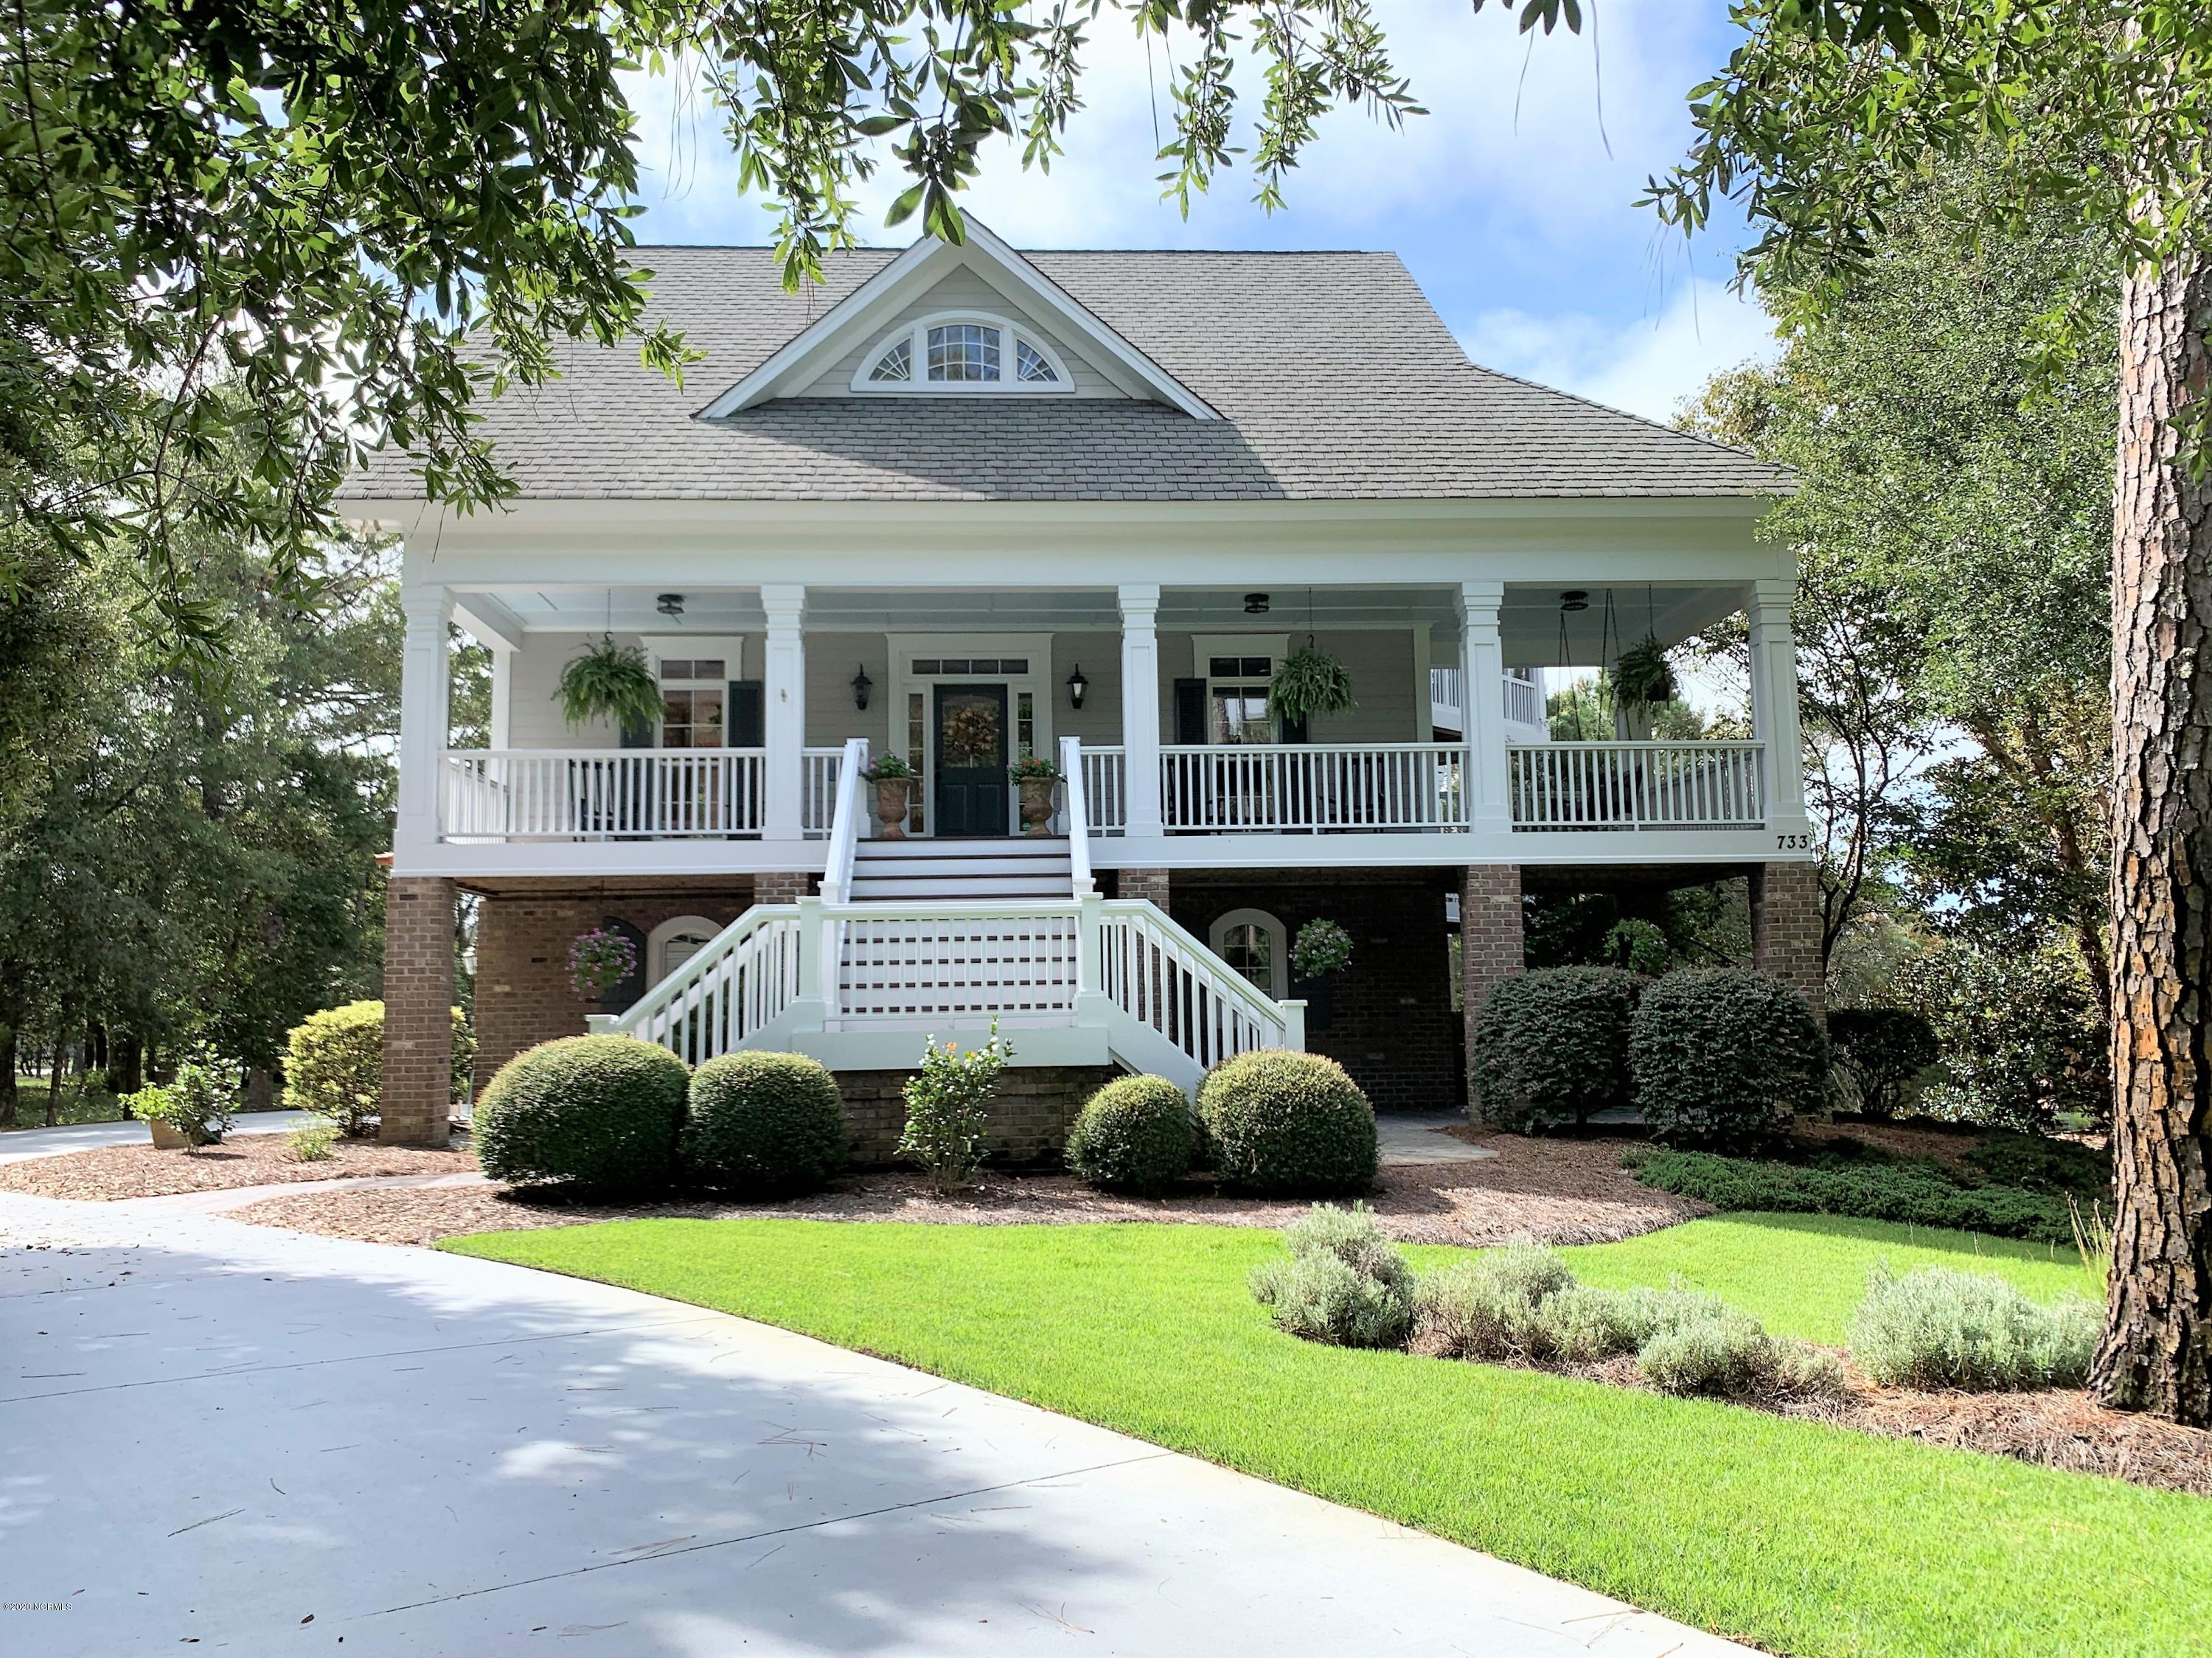 733 Beaufain Street, Supply, North Carolina 28462, 3 Bedrooms Bedrooms, 10 Rooms Rooms,3 BathroomsBathrooms,Single family residence,For sale,Beaufain,100230918